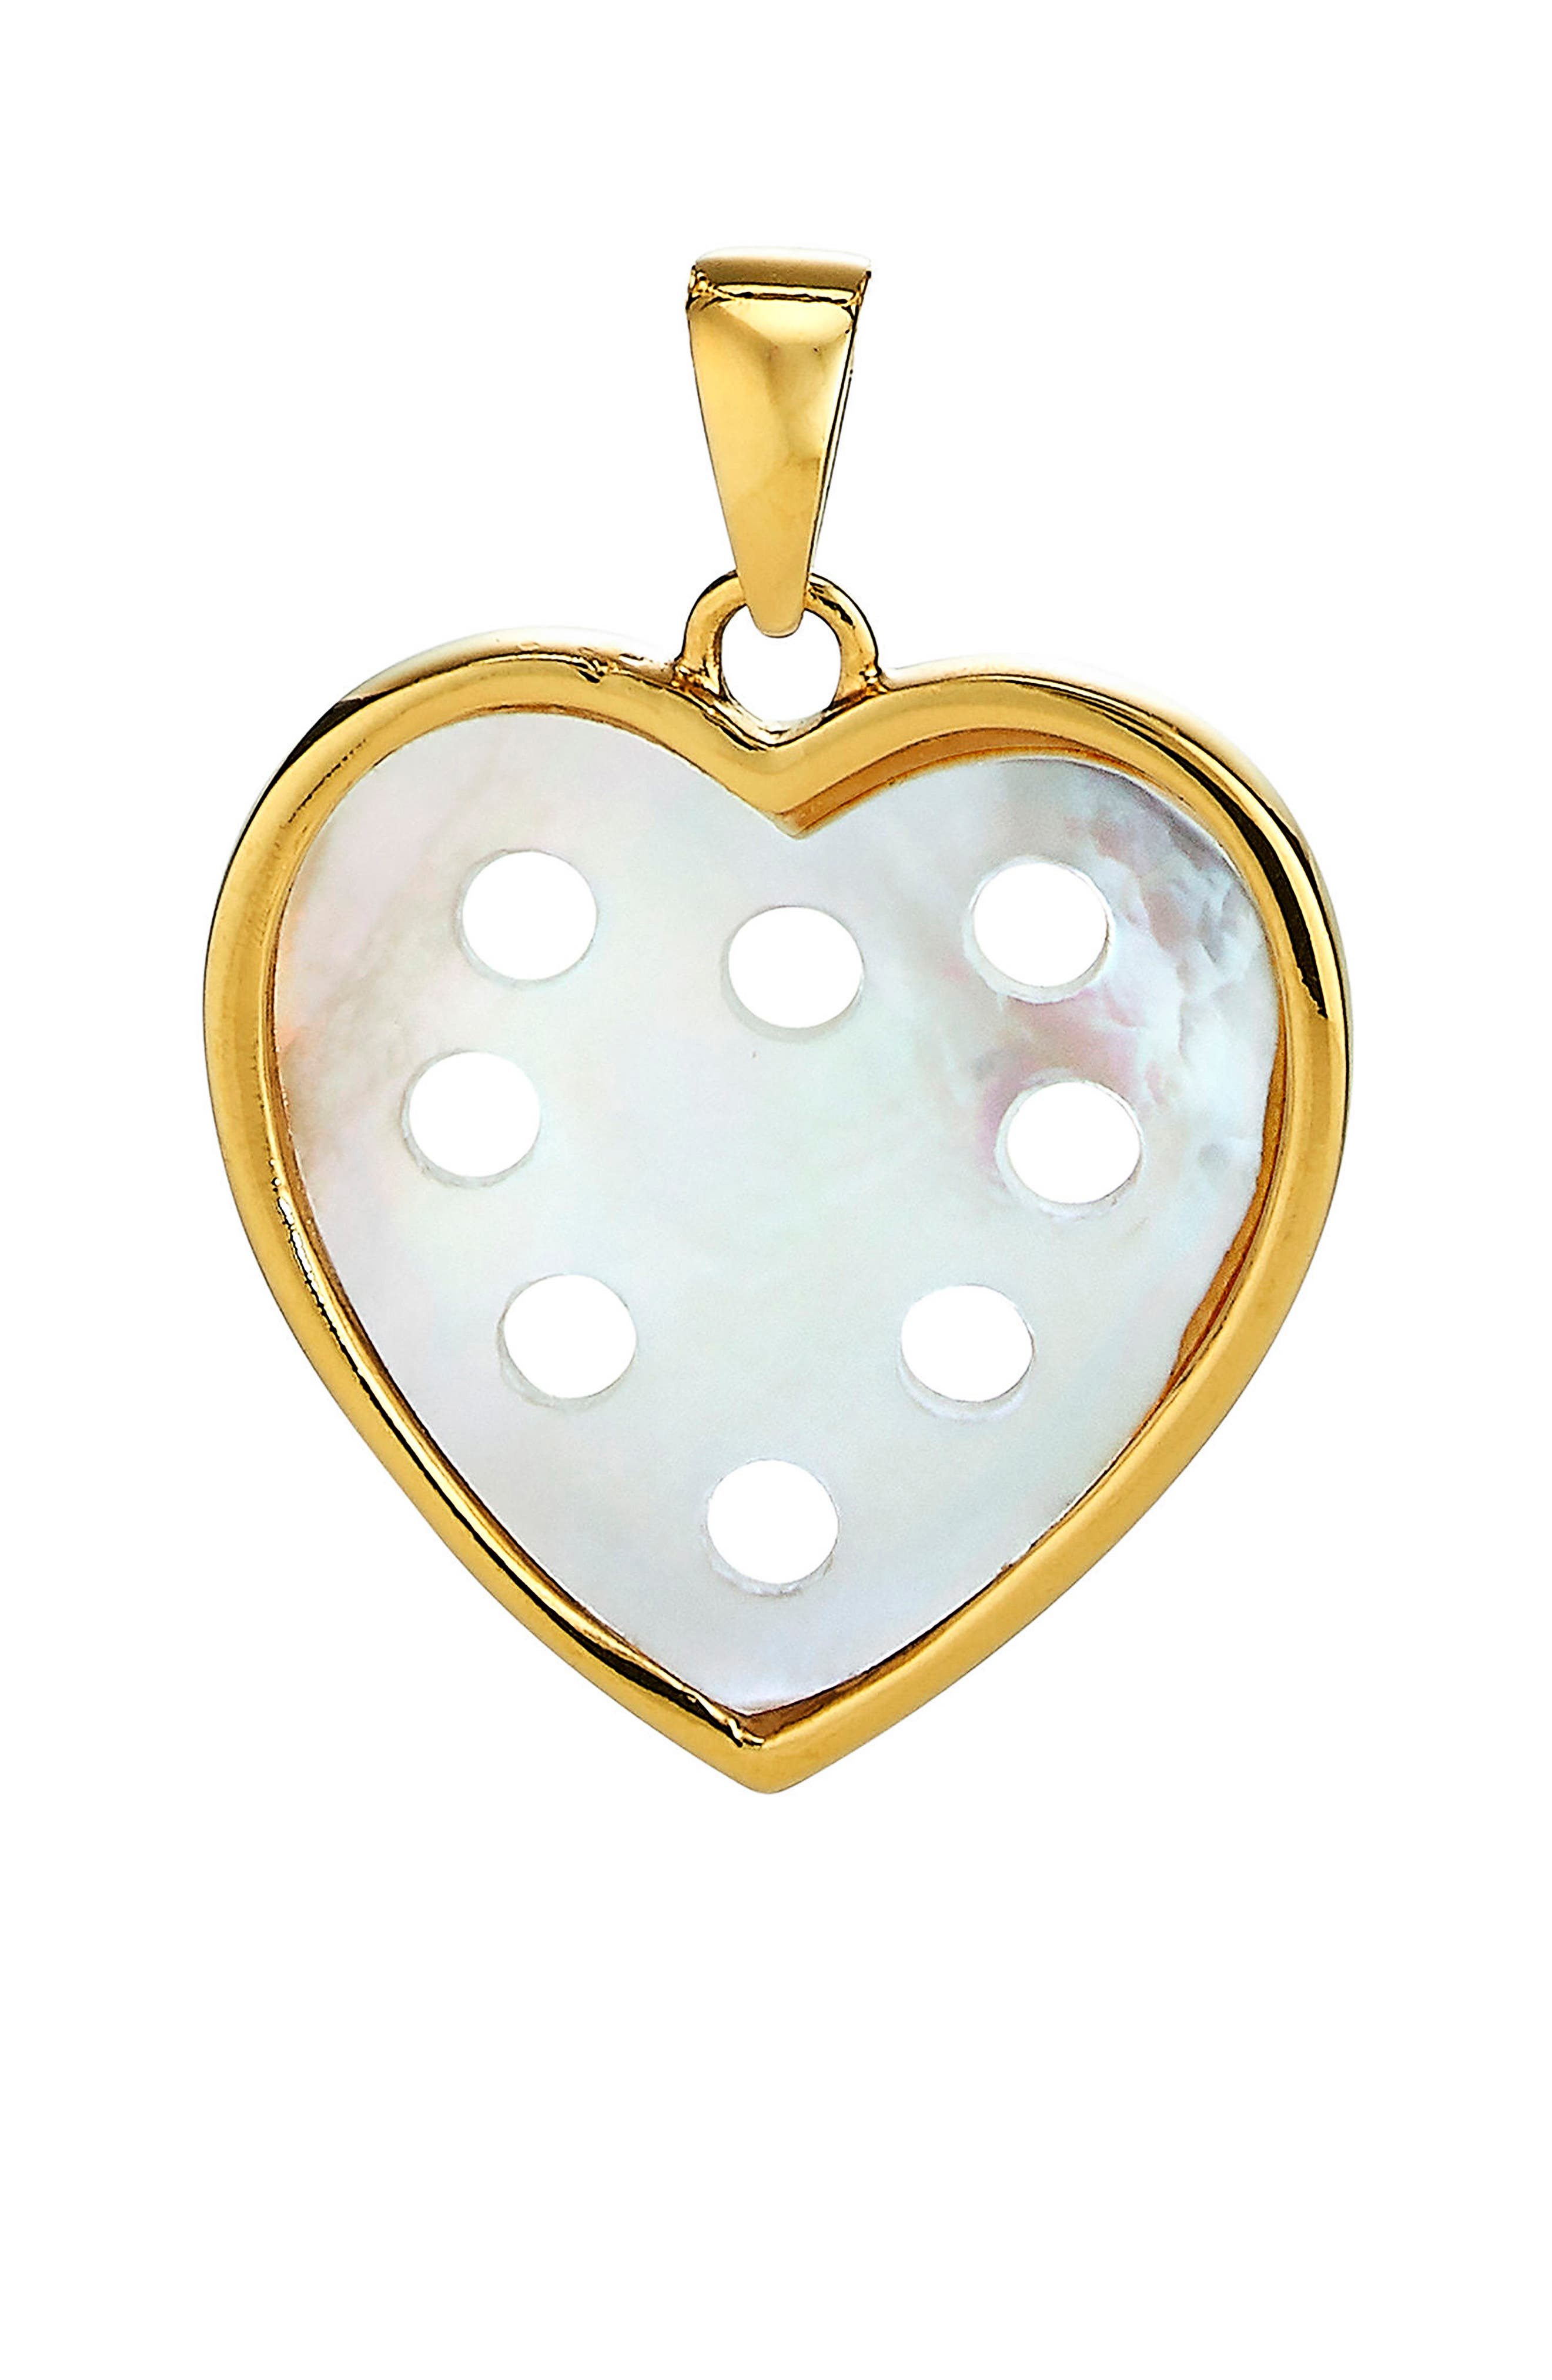 Small Mother-of-Pearl Heart Charm,                         Main,                         color, GOLD - MOTHER OF PEARL